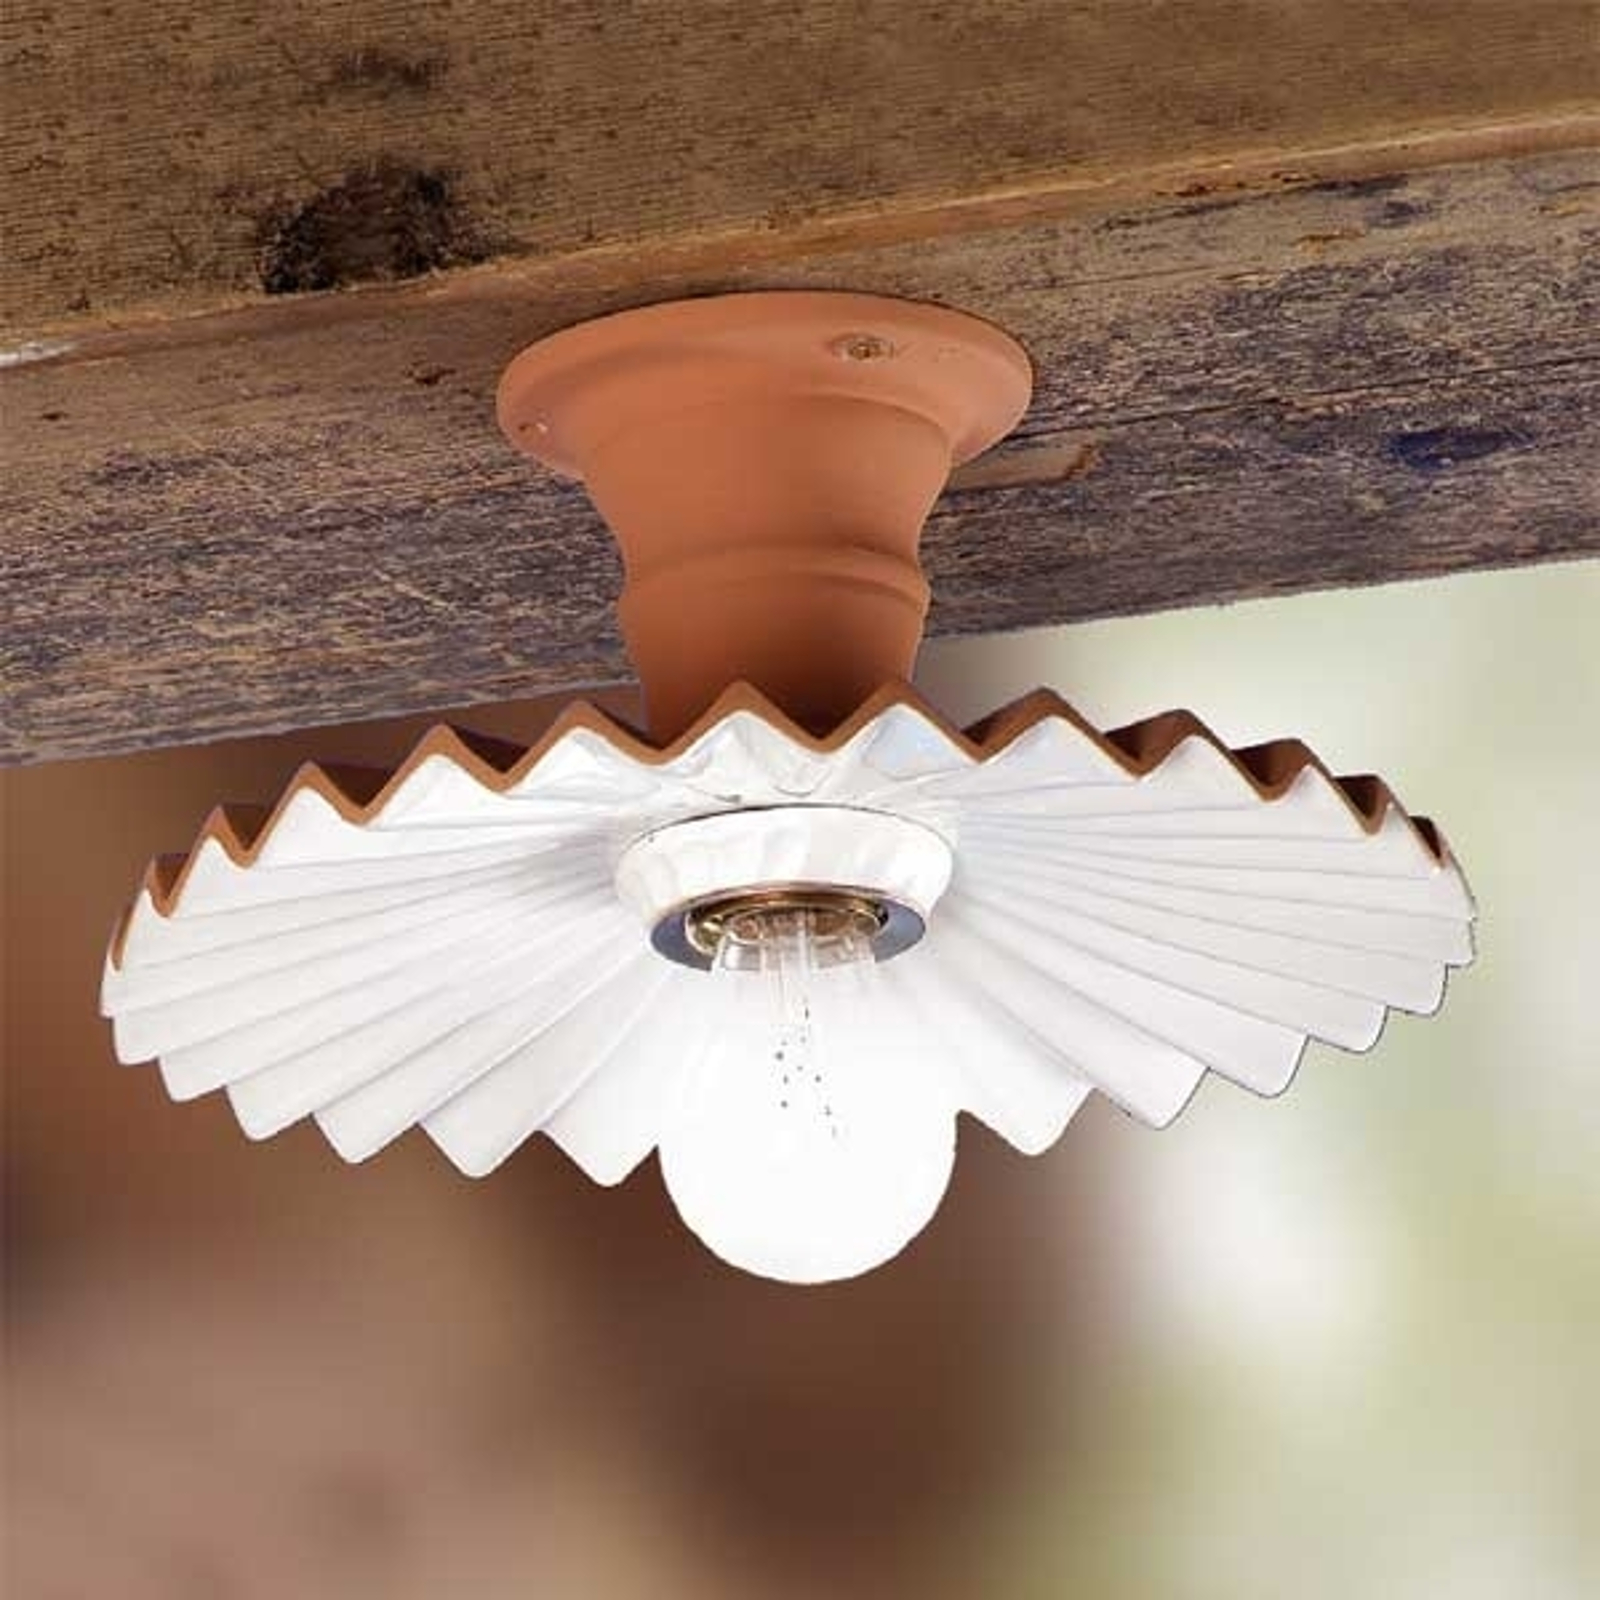 ARGILLA ceiling light in a country house style_2013020_1